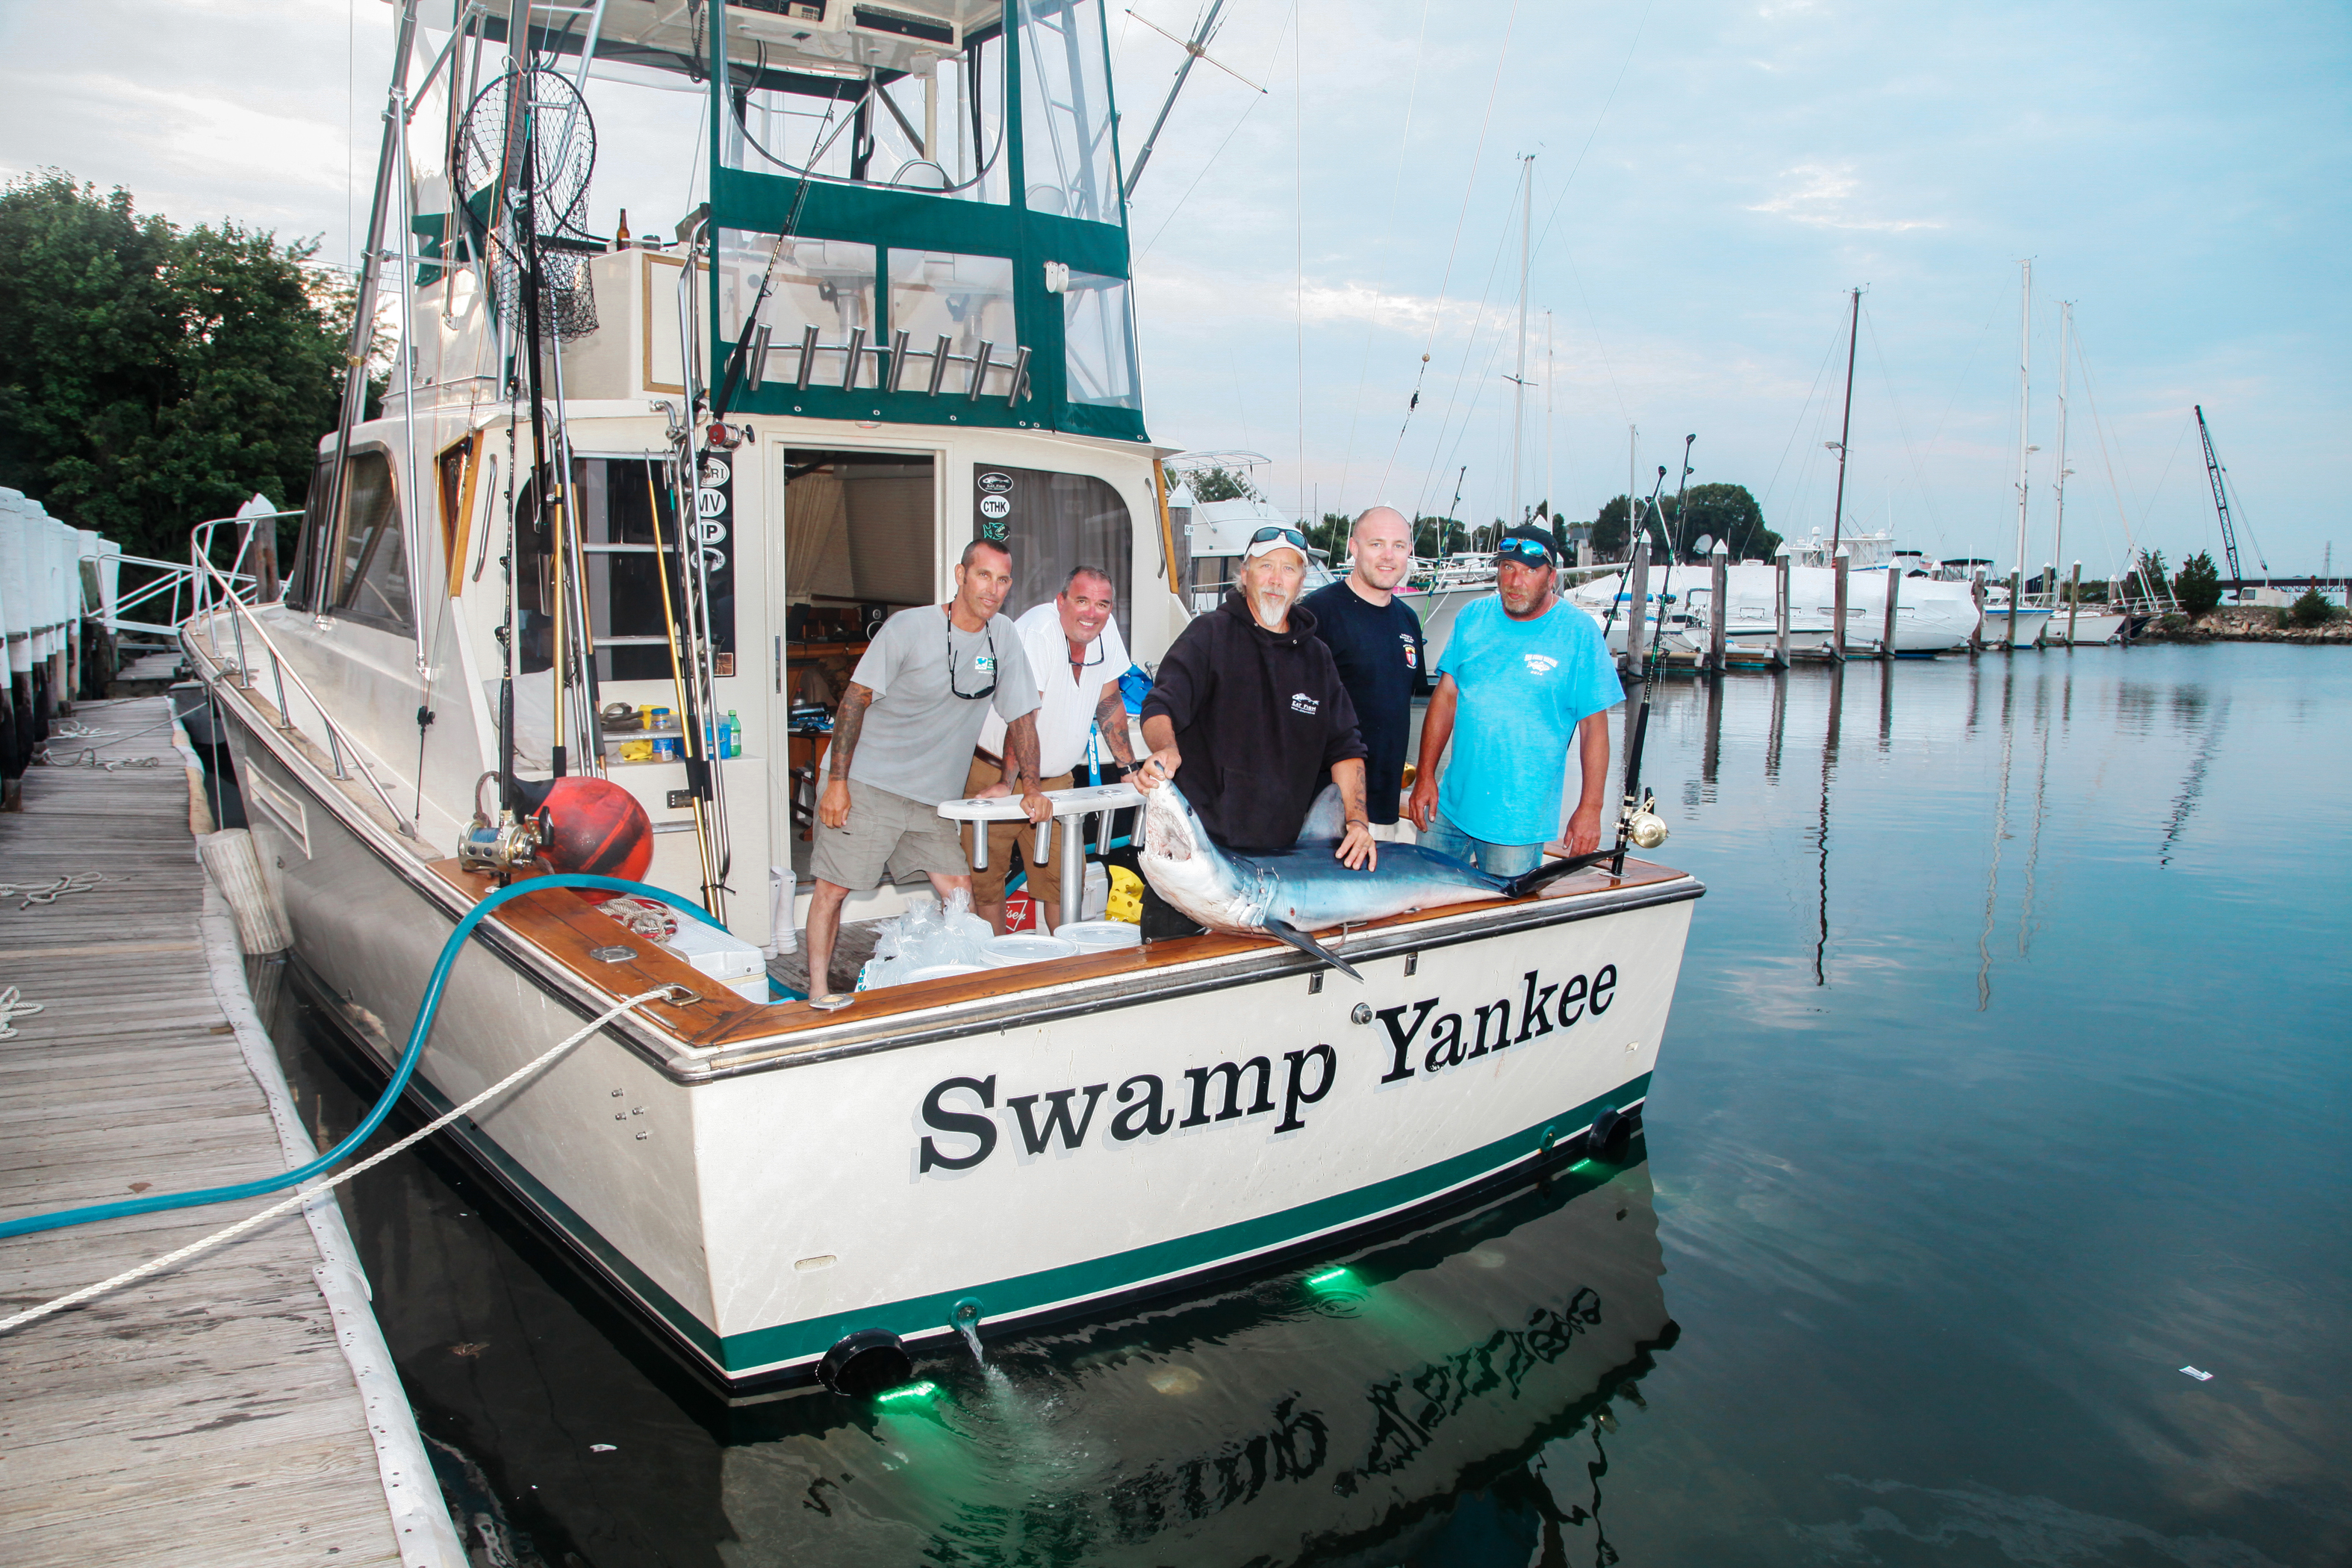 The whole crew of the Swamp Yankee with their catch.